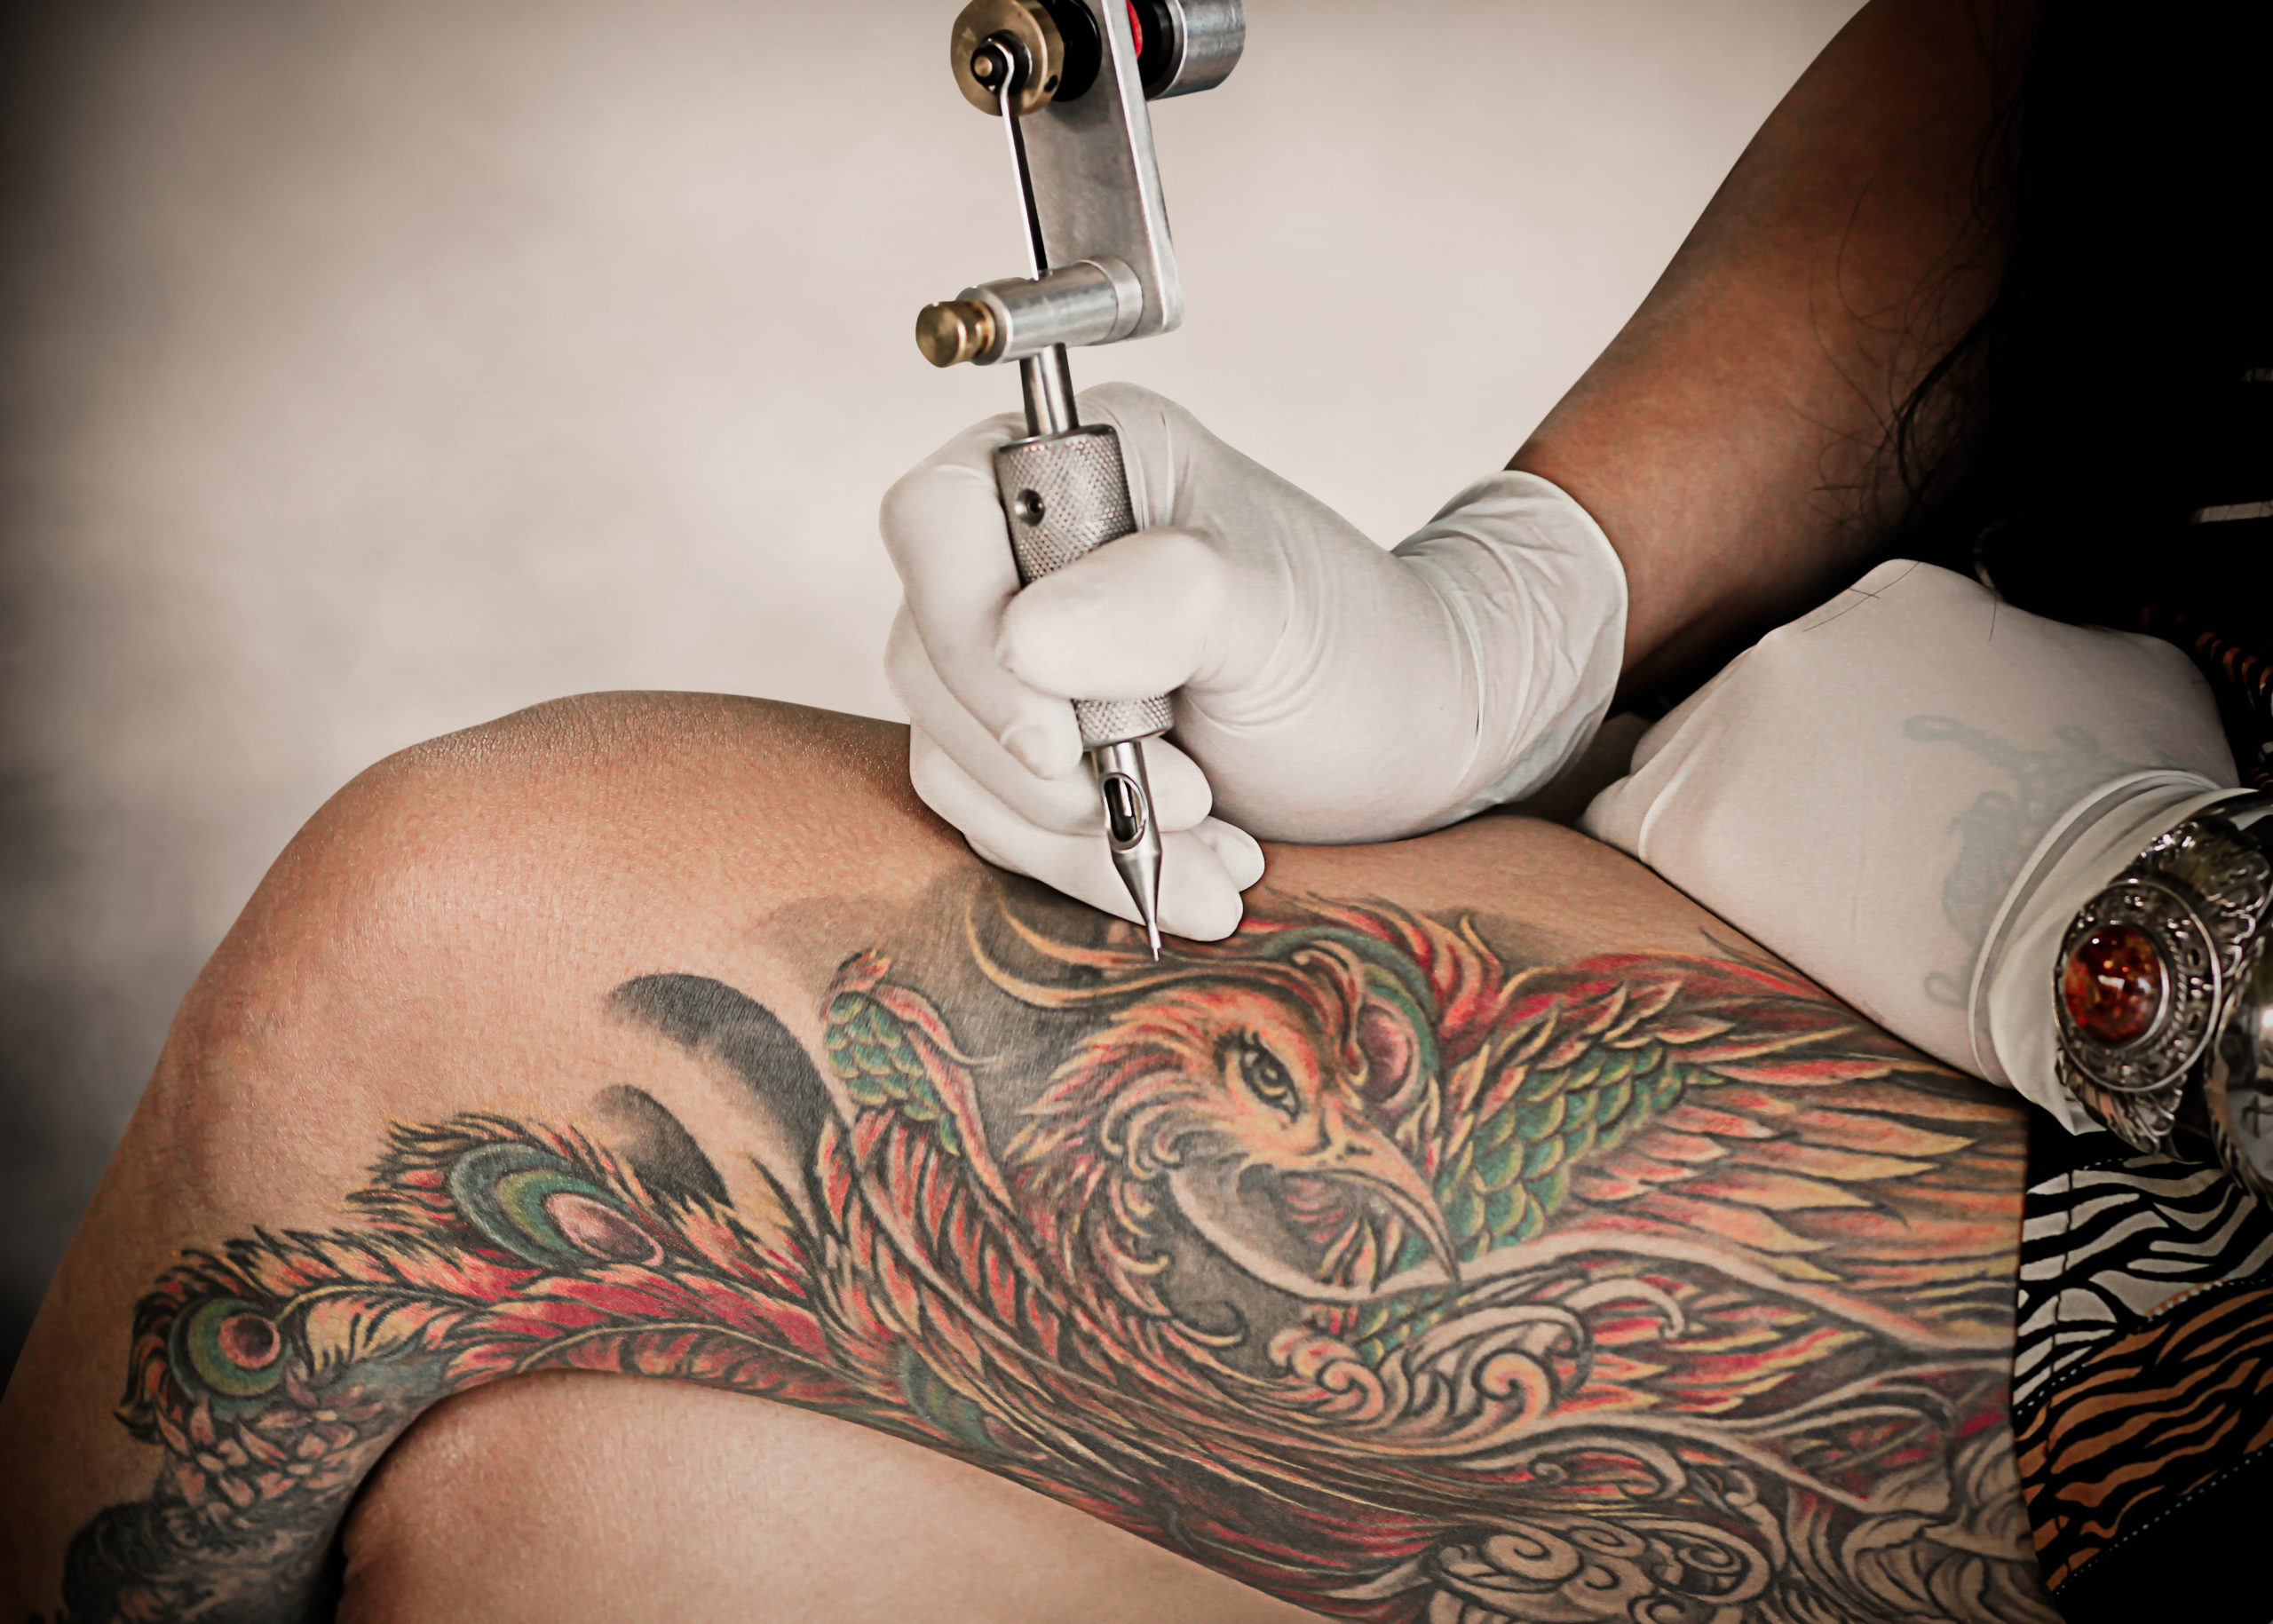 Somebody tattooing a leg with a tattoo gun